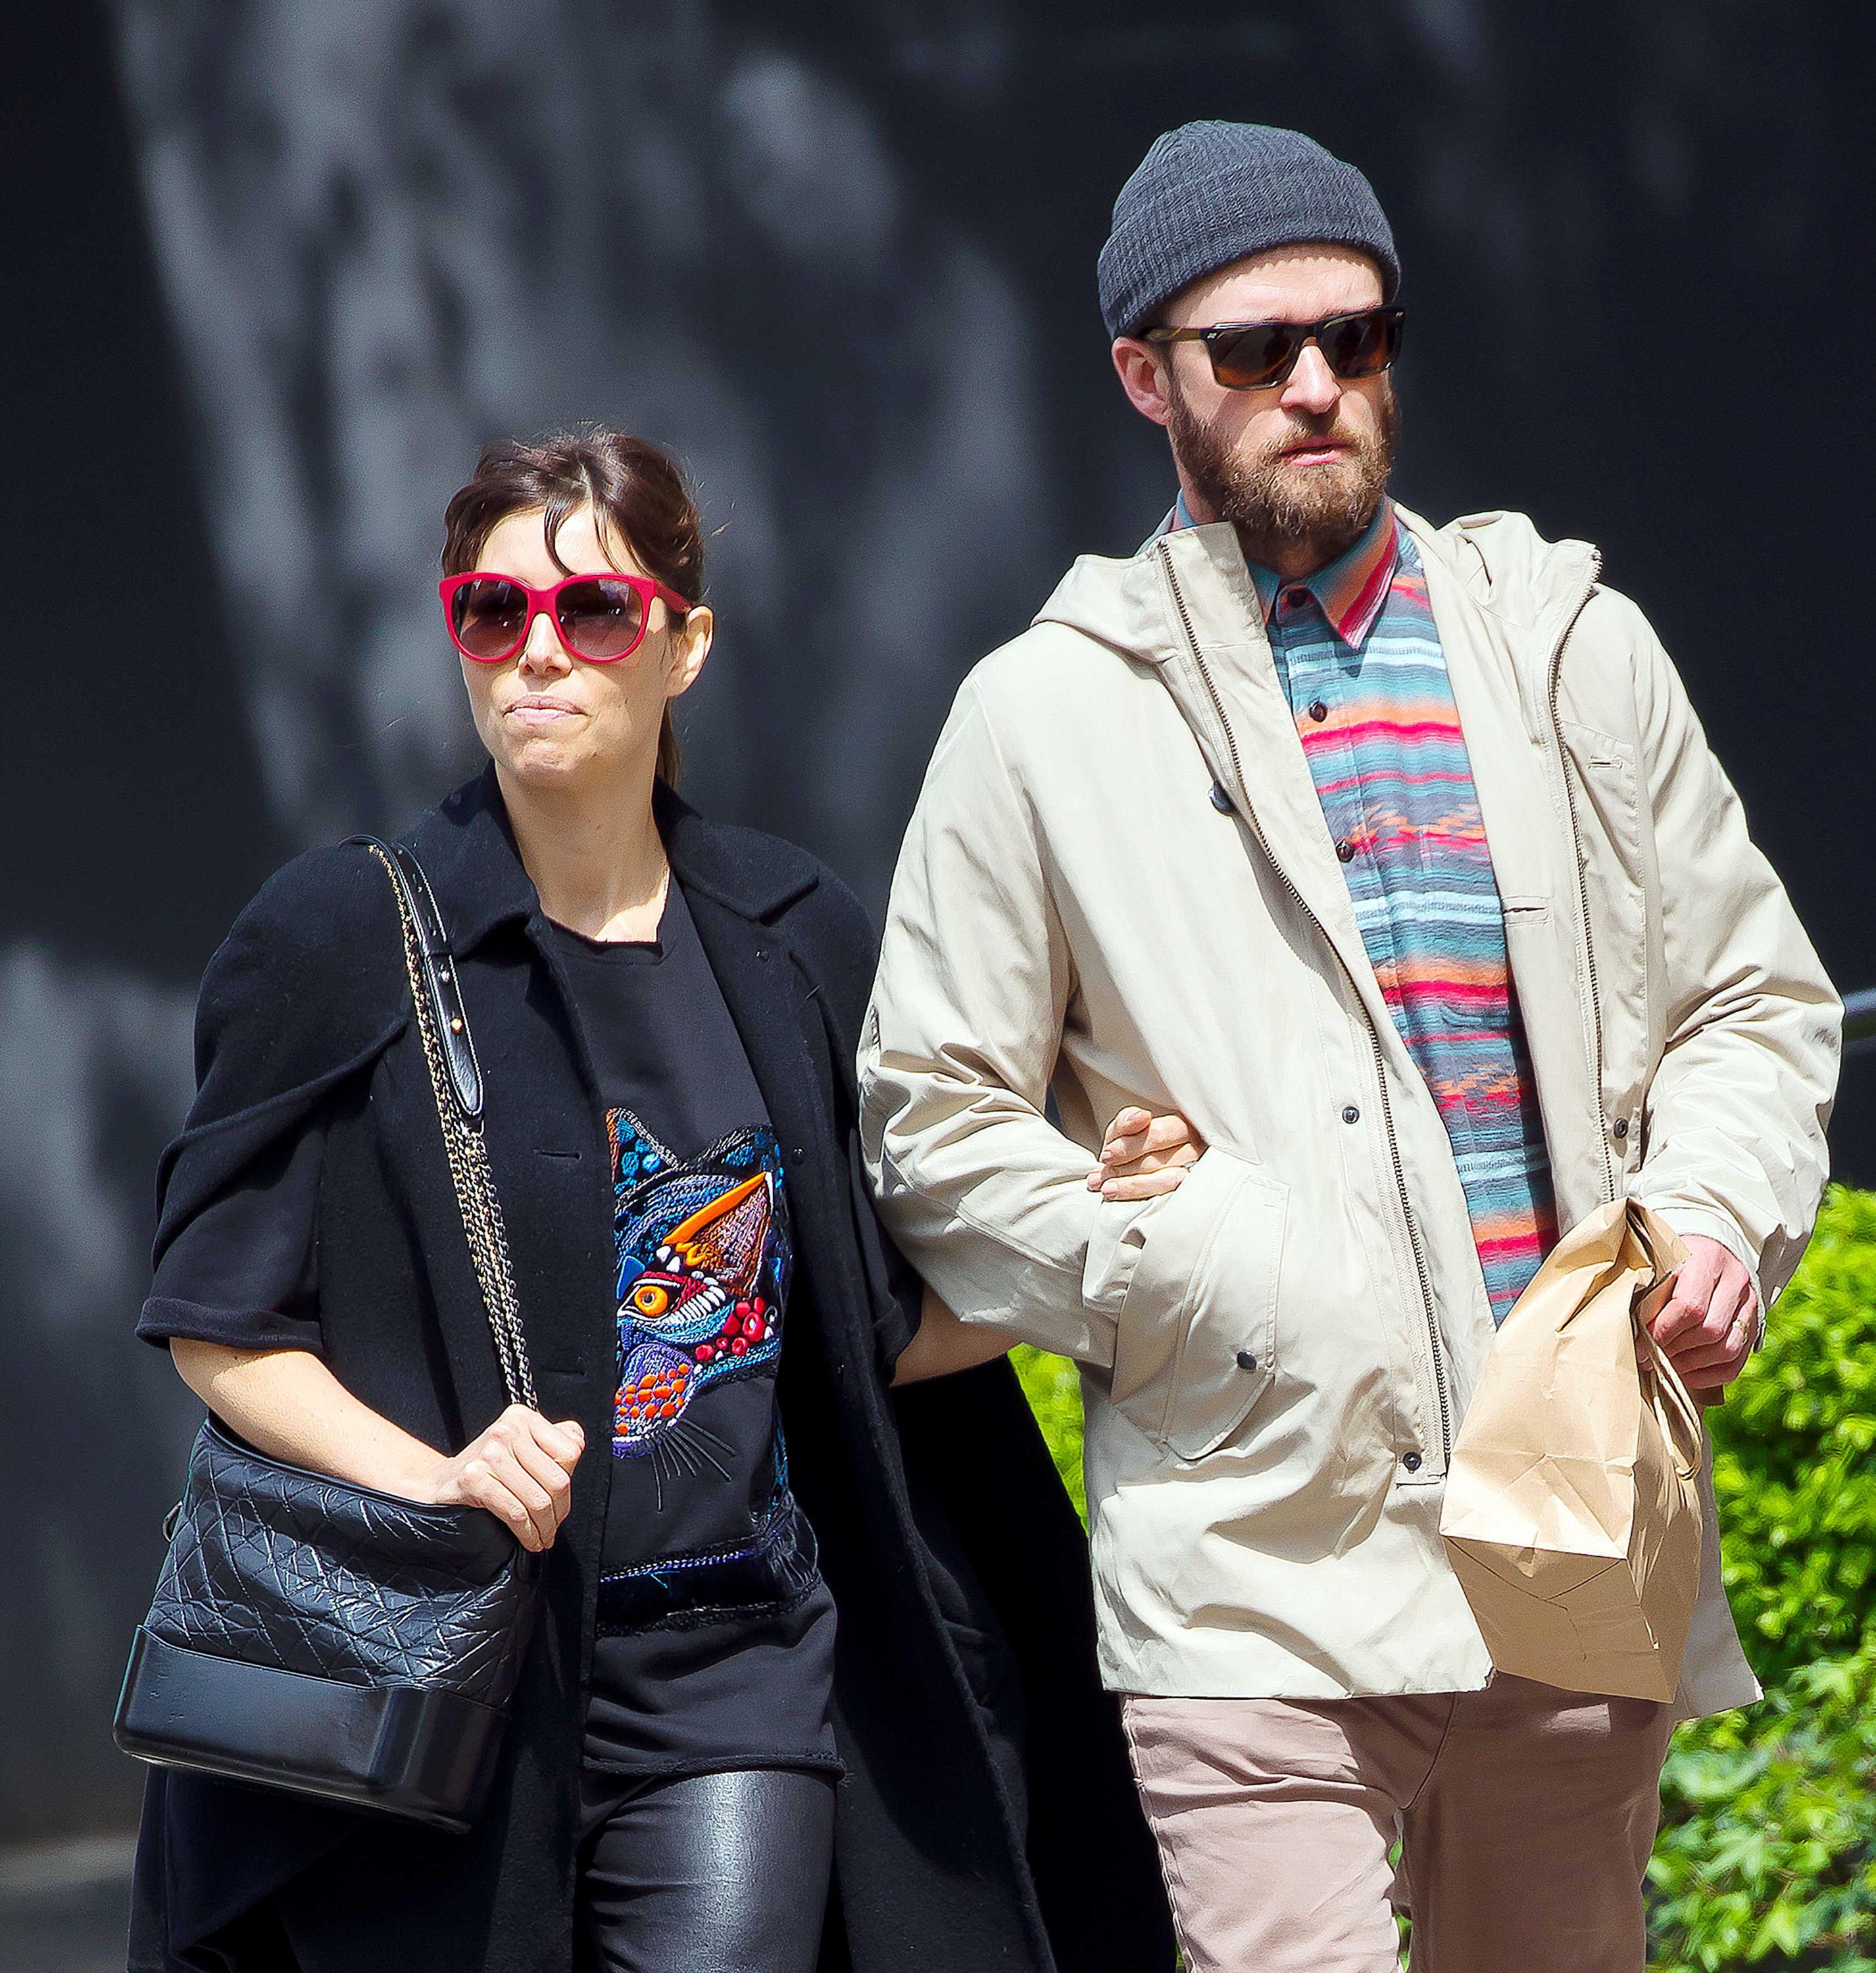 Jessica Biel out & about in New York City